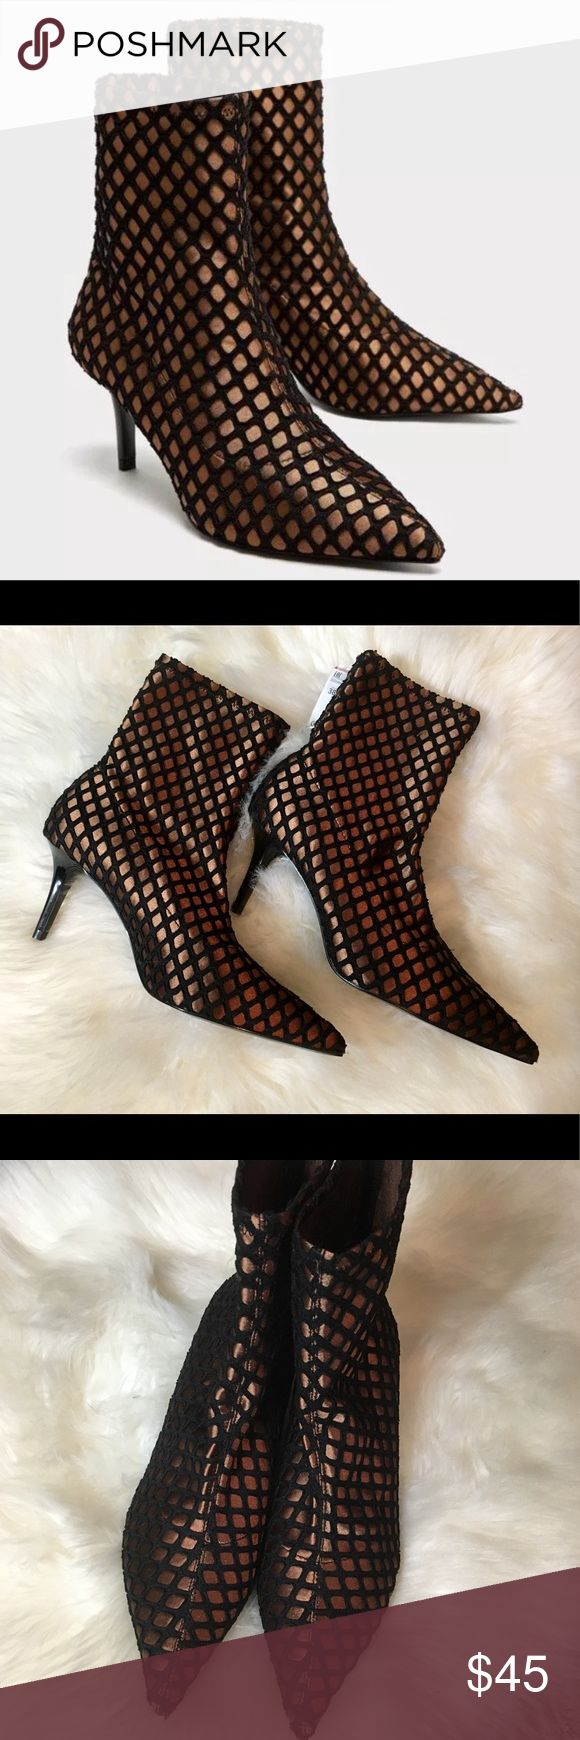 """ZARA Ankle Boots ZARA Ankle Boots  • Bronze colored w/black fabric pattern design  • Pull on stretchy material  • 2.5"""" Heel height  • Size 38 = US 7.5   📬  - Orders ship w/in 24- 48 hrs. Monday - Friday.  - Orders placed on weekends/holidays ship next business day.   Bundle 3 or more items for Private Offer Discount 😉 Zara Shoes Ankle Boots & Booties"""